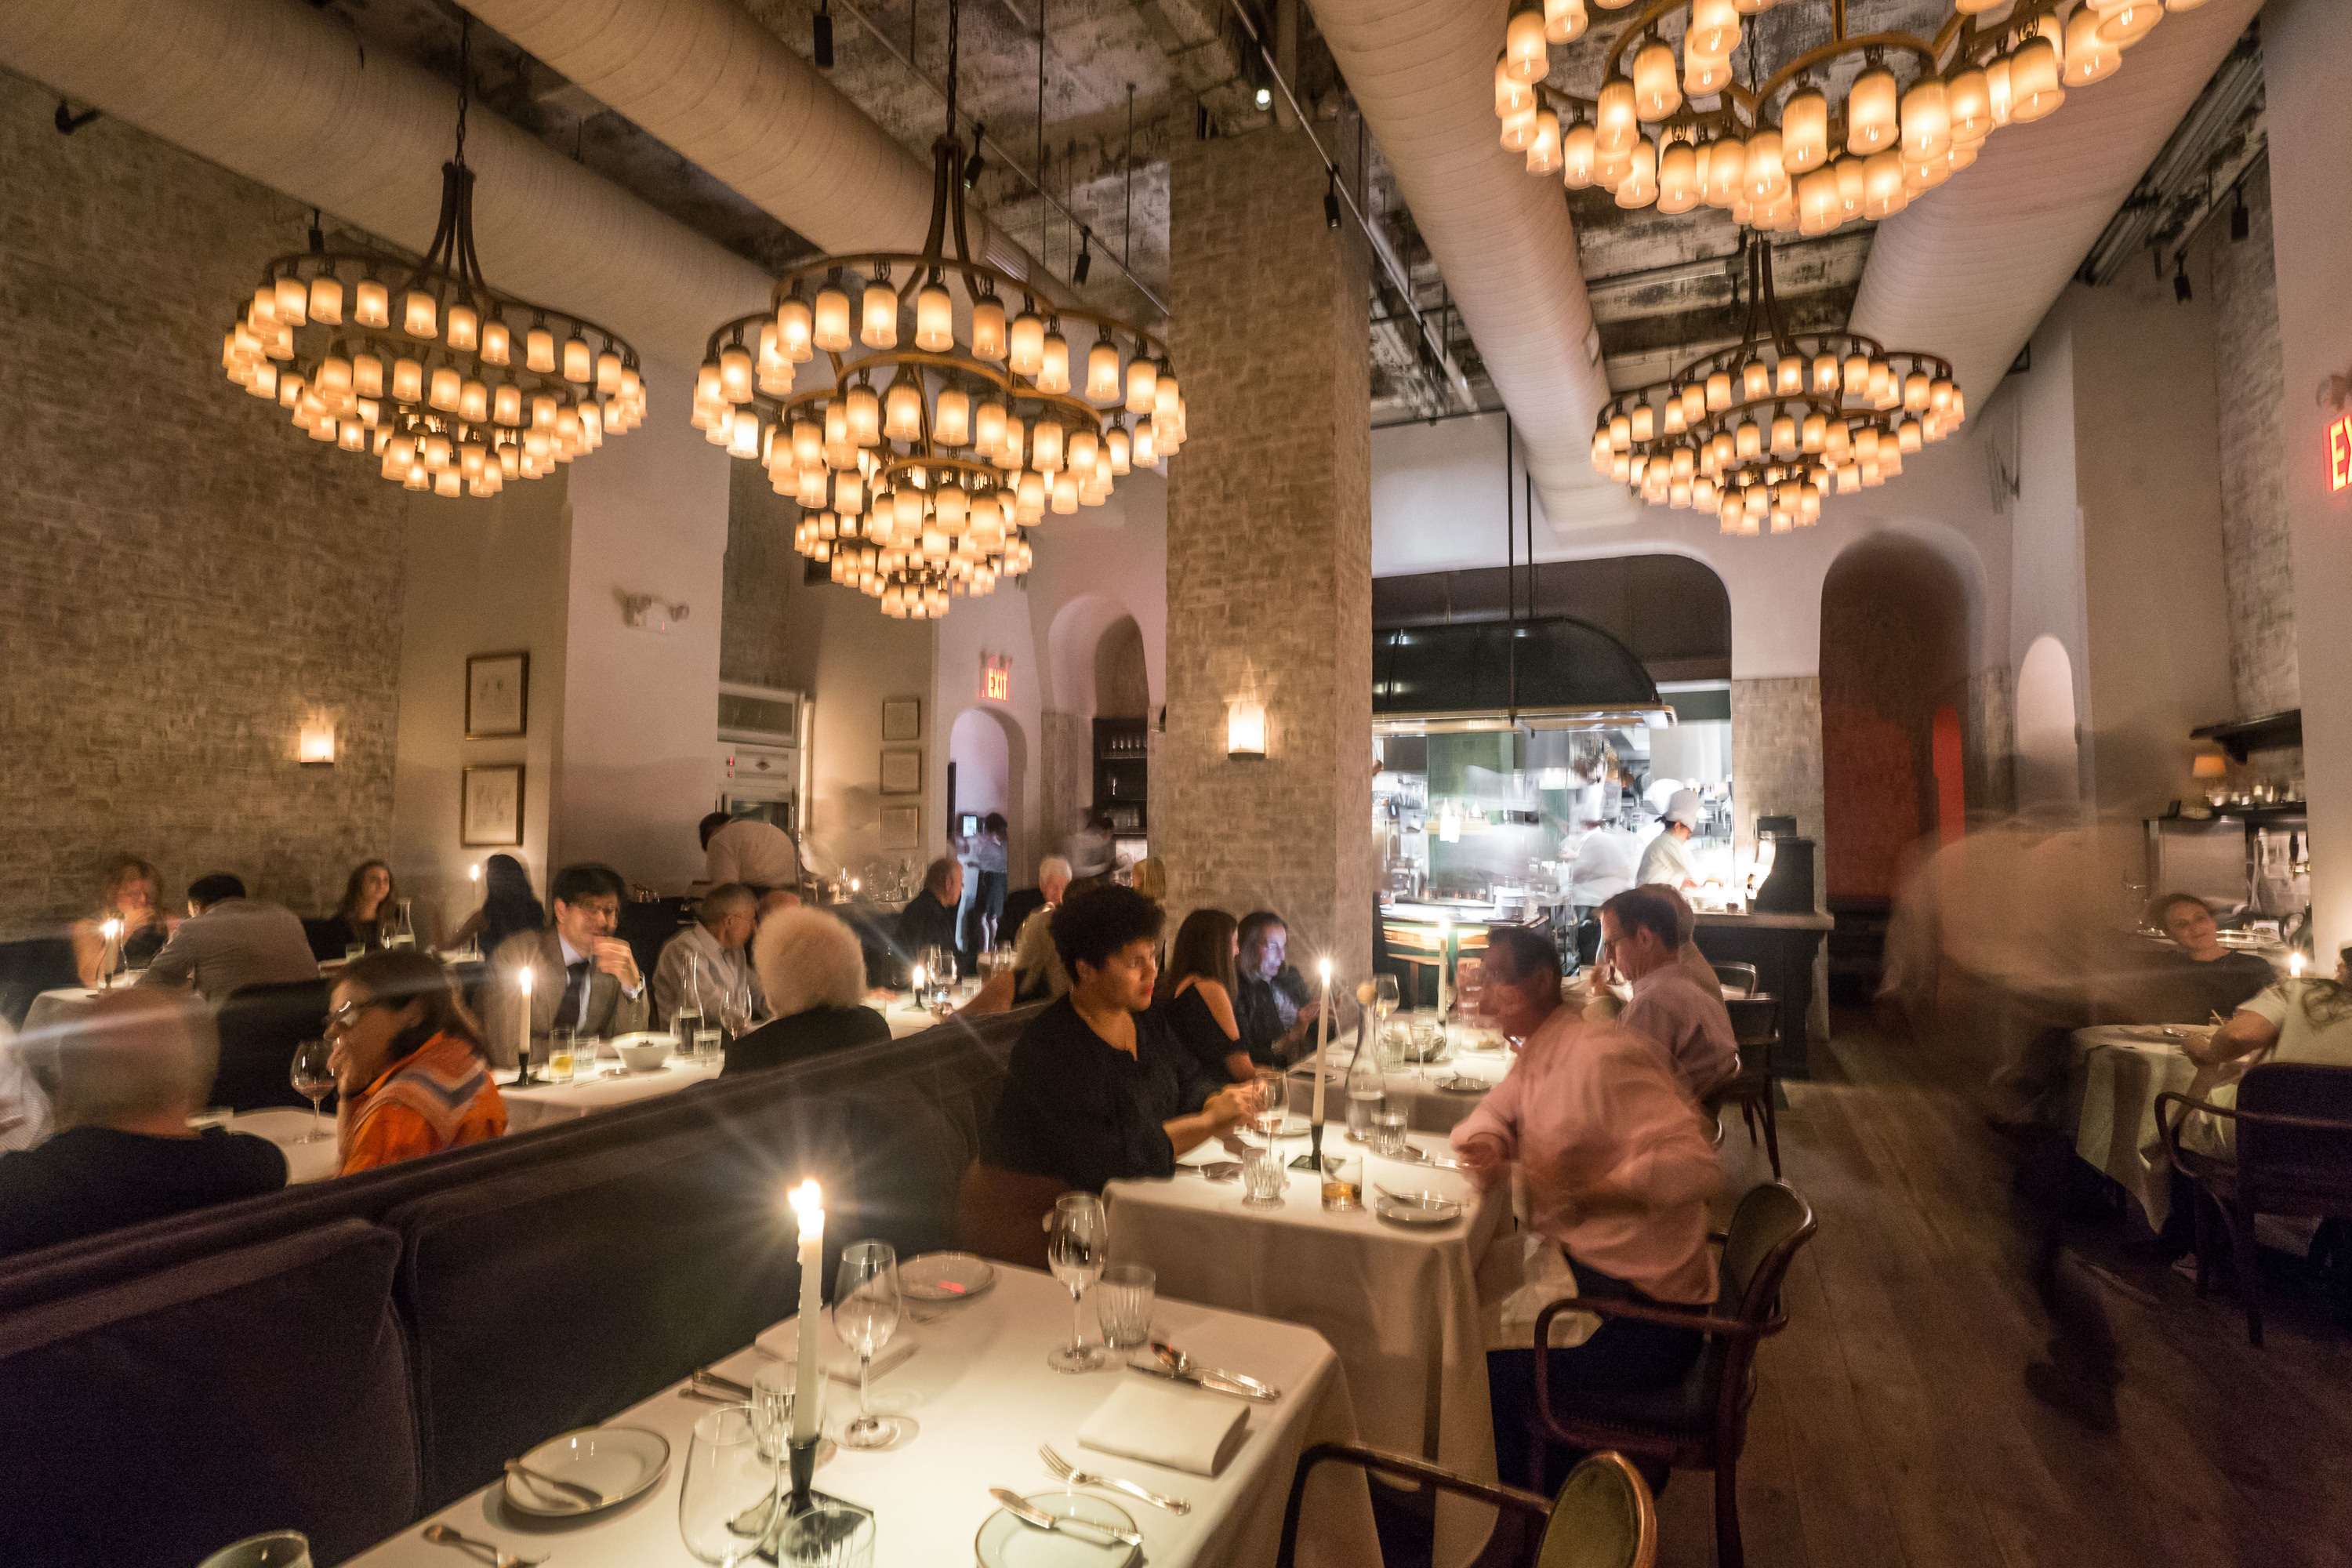 The most romantic restaurants in the city